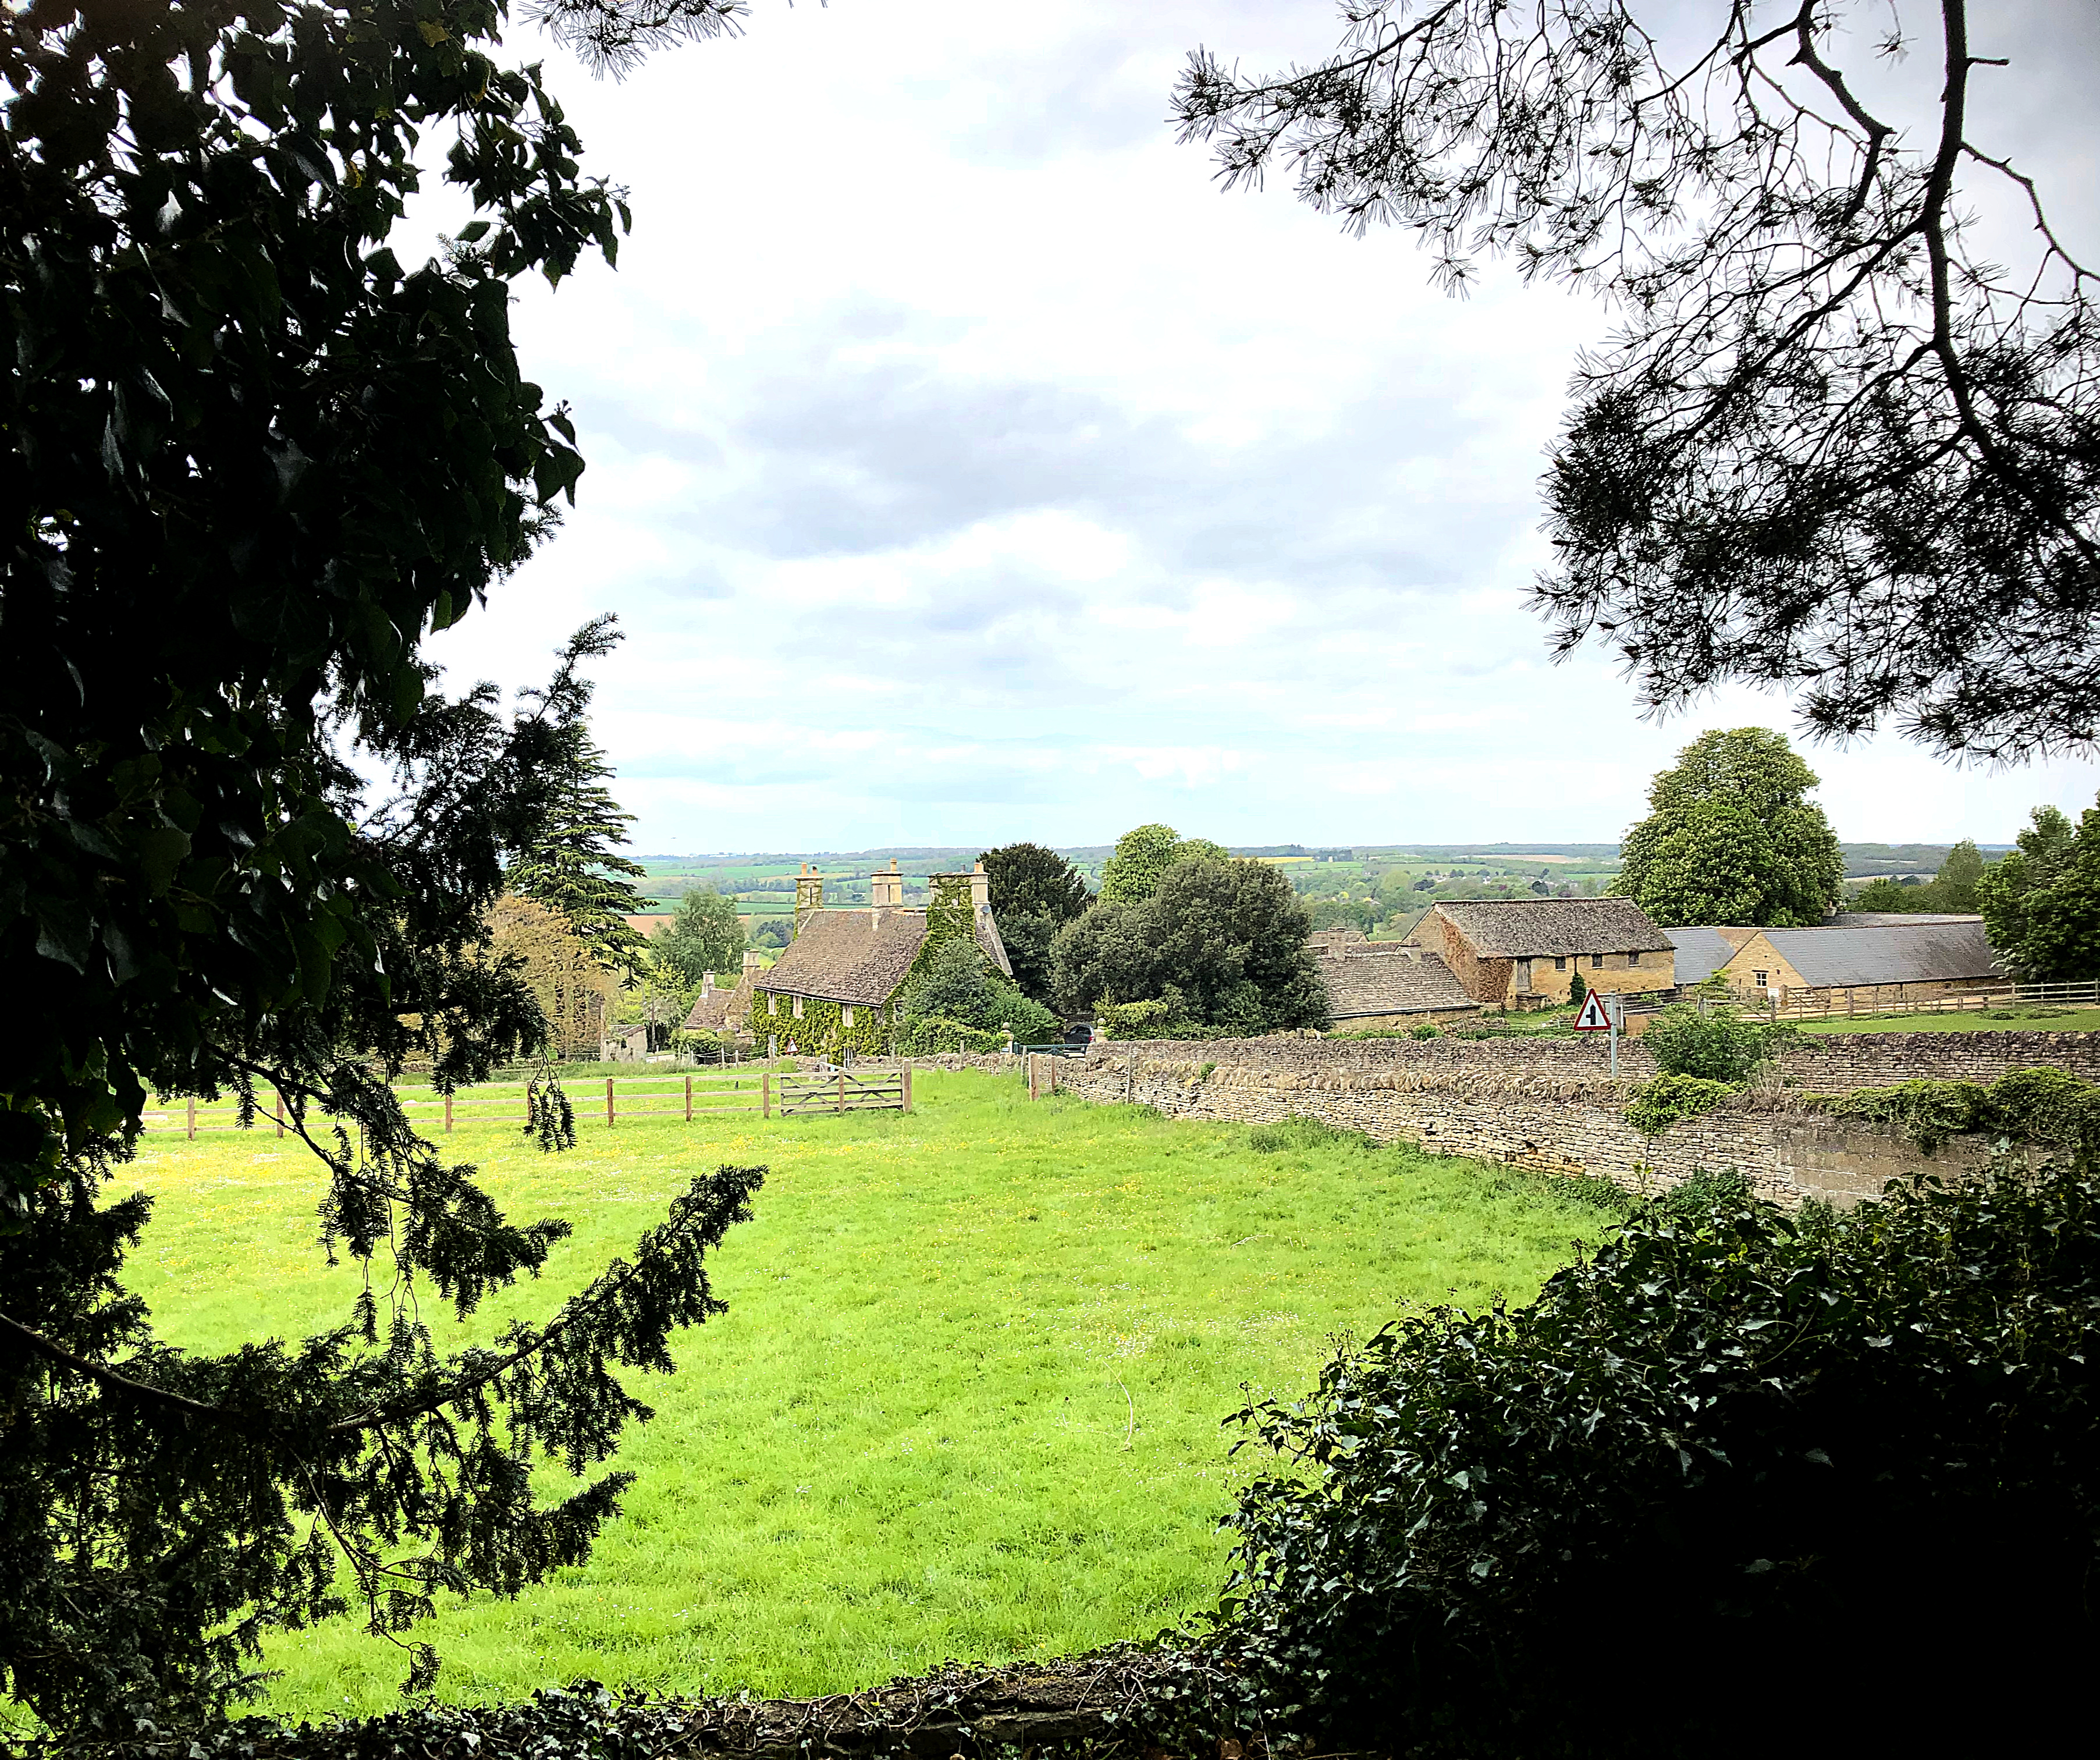 View over the Welland Valley at Collyweston